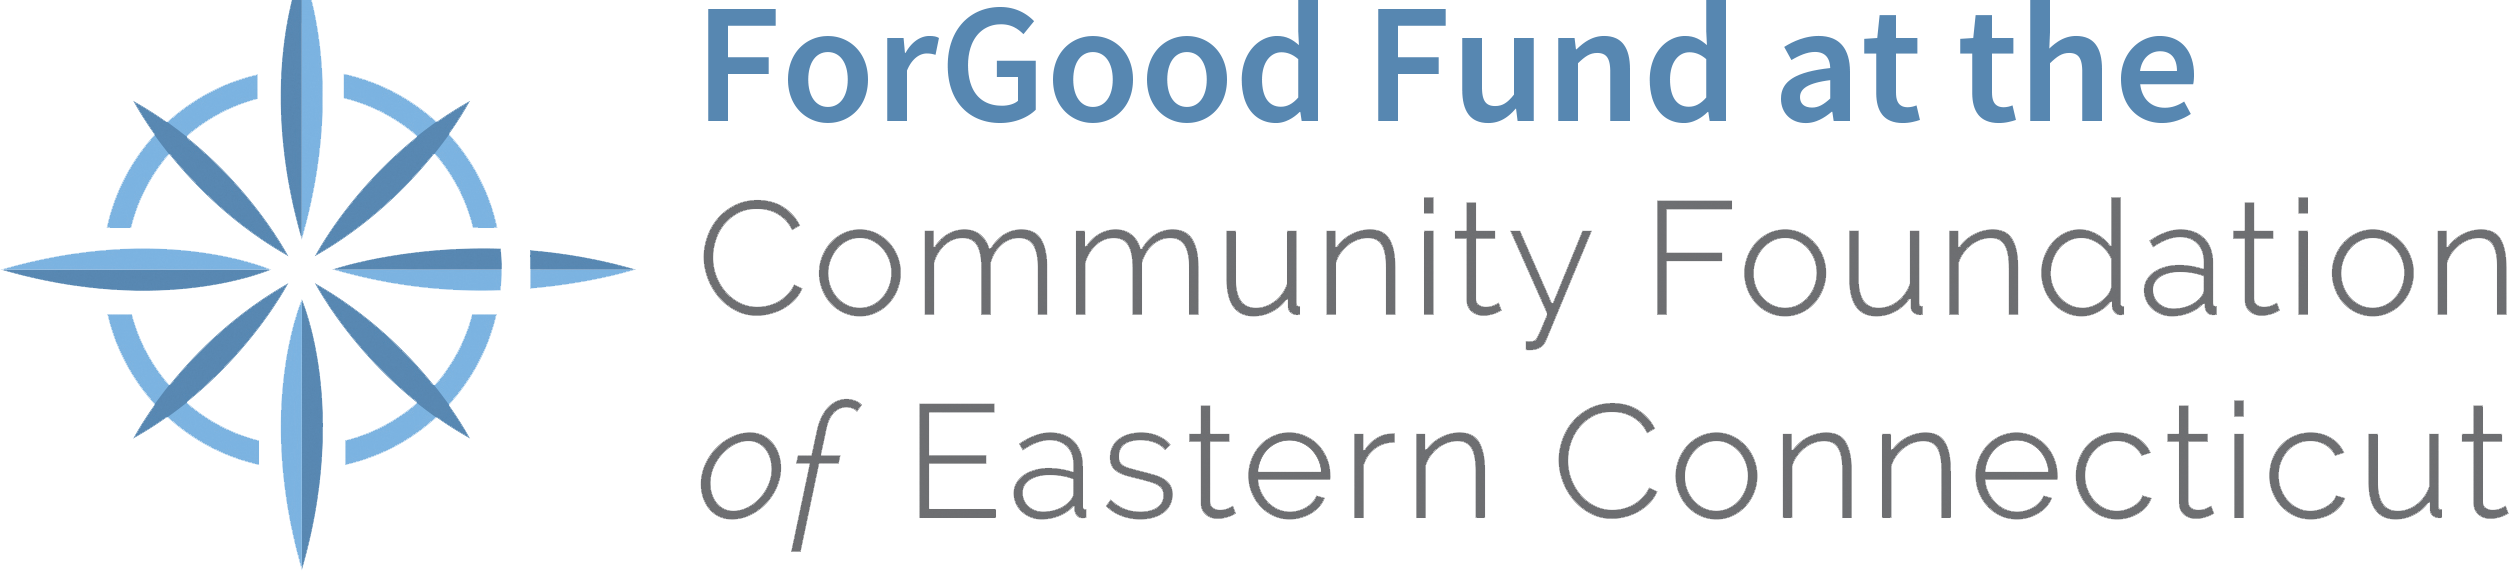 Goodfor Fund Community Foundation of Eastern Connecticut